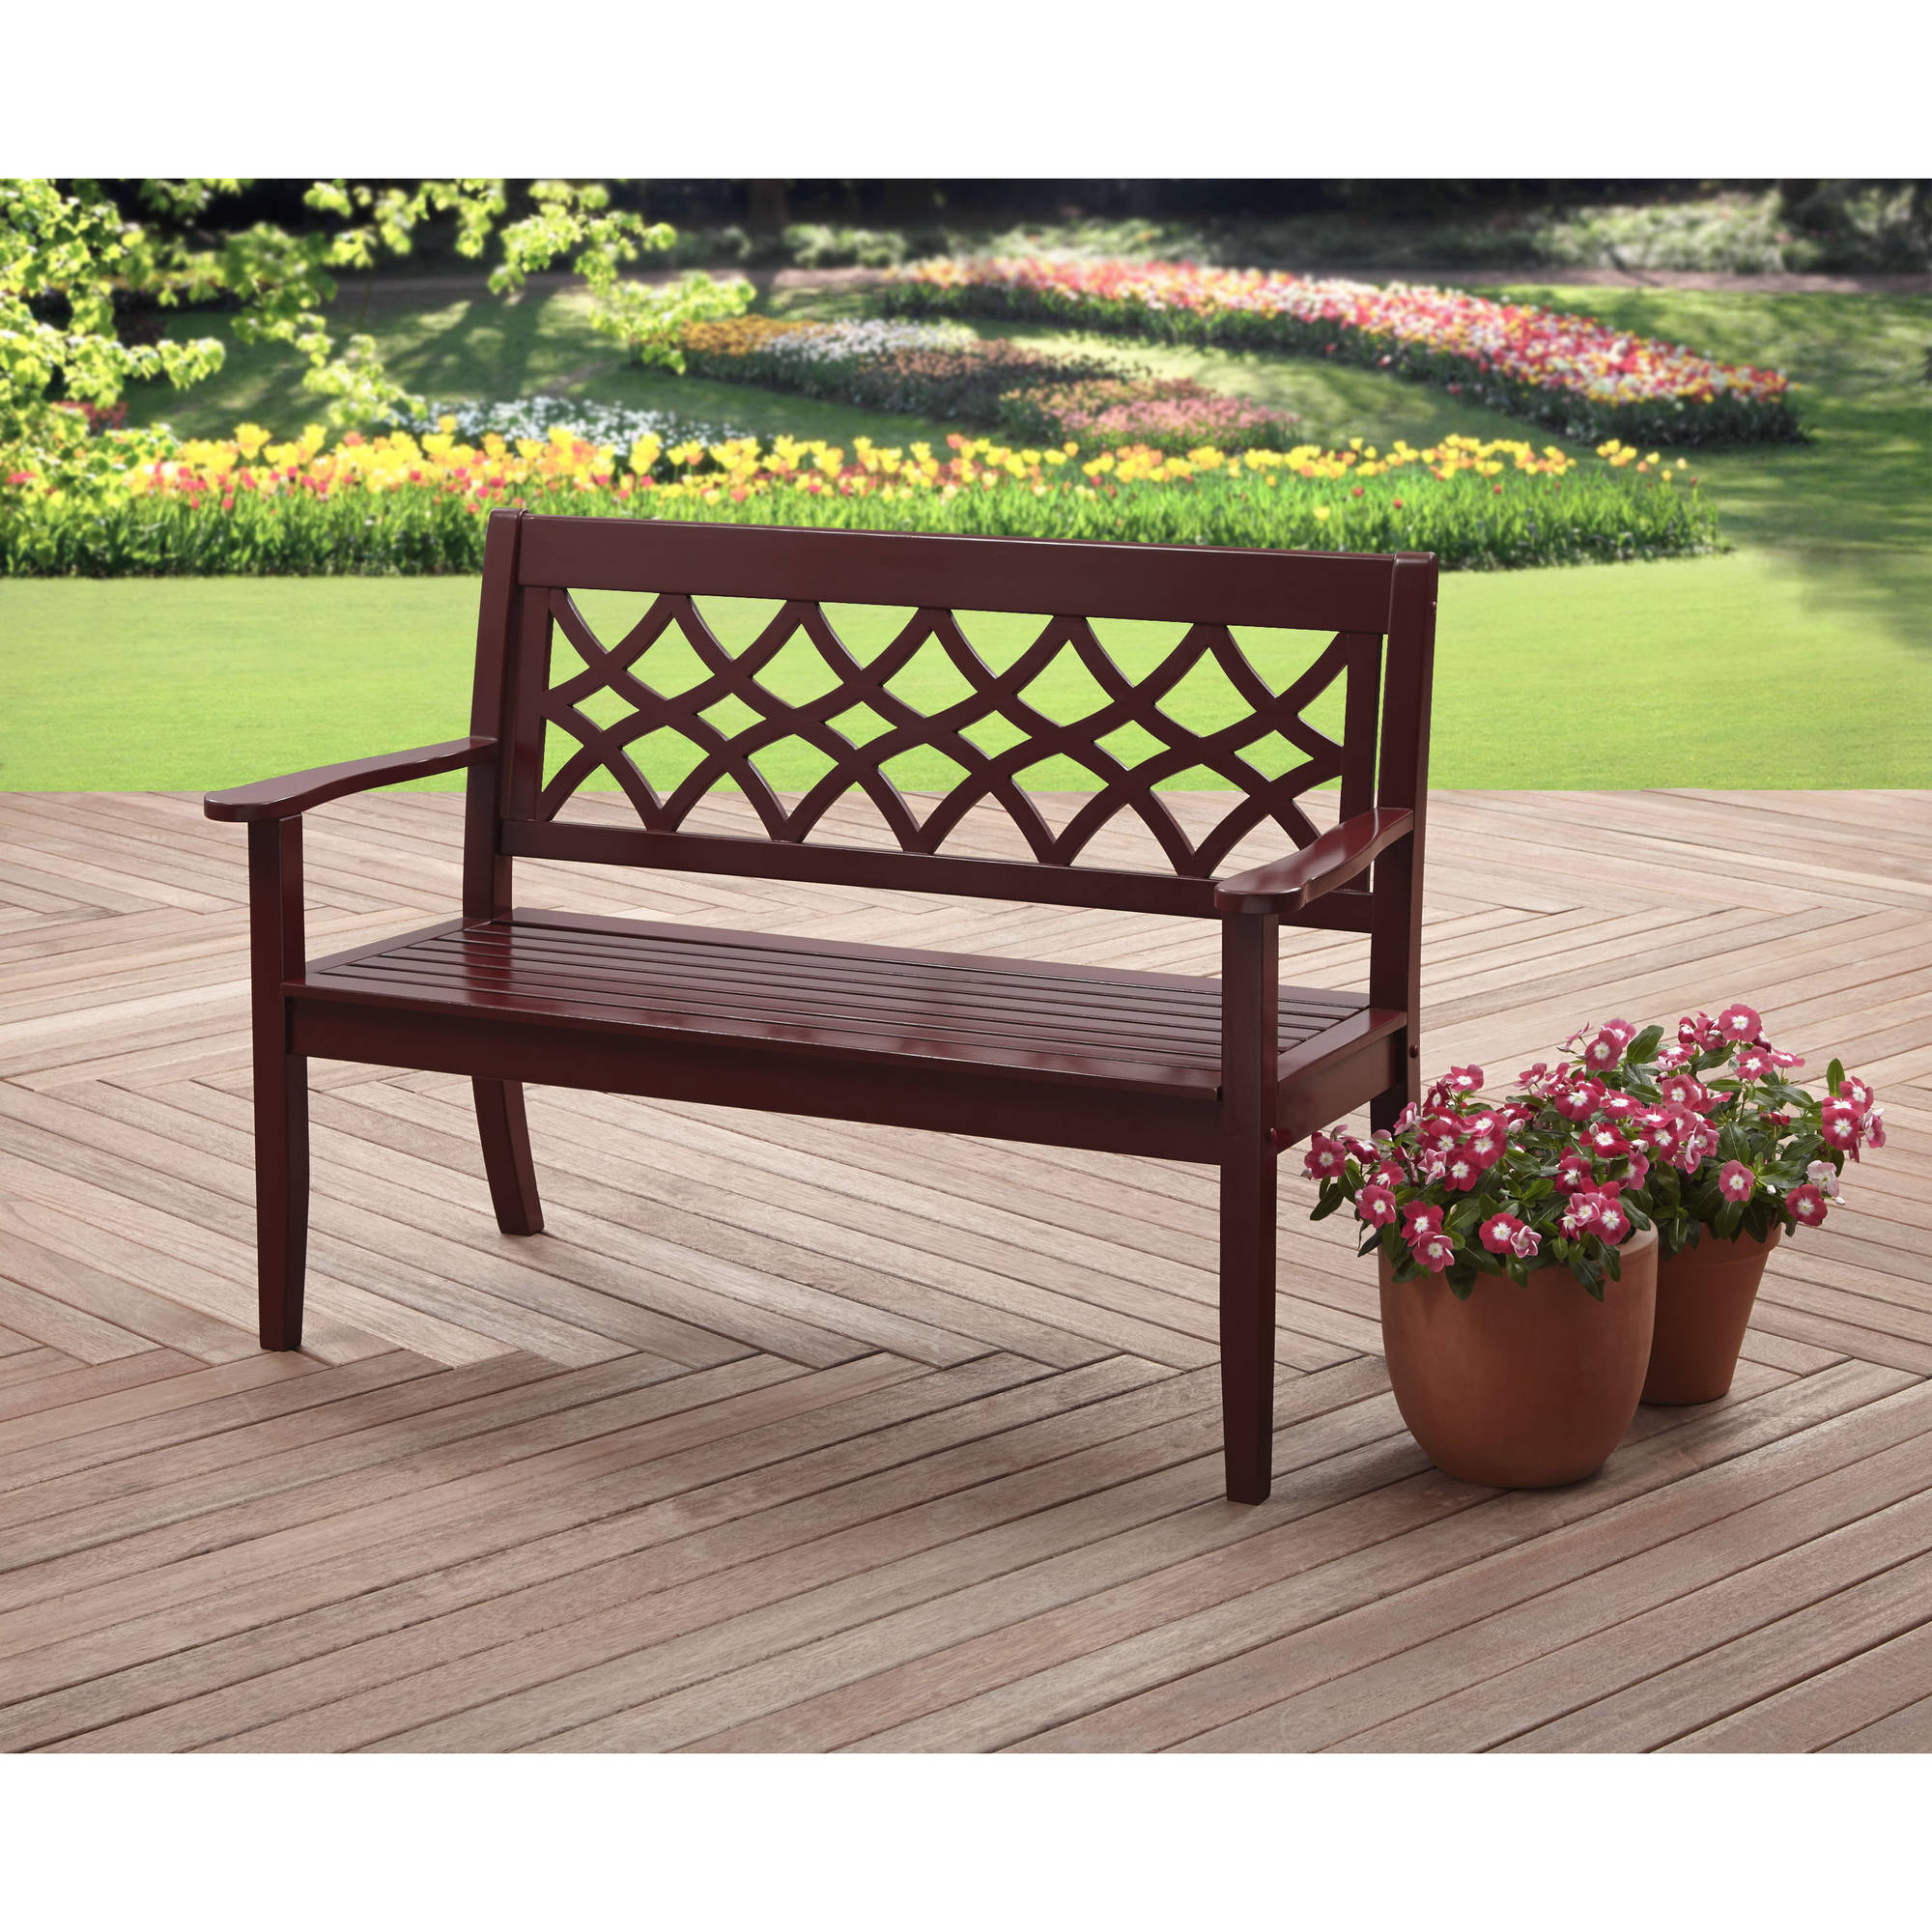 Unique Outdoor Benches On Sale Pictures